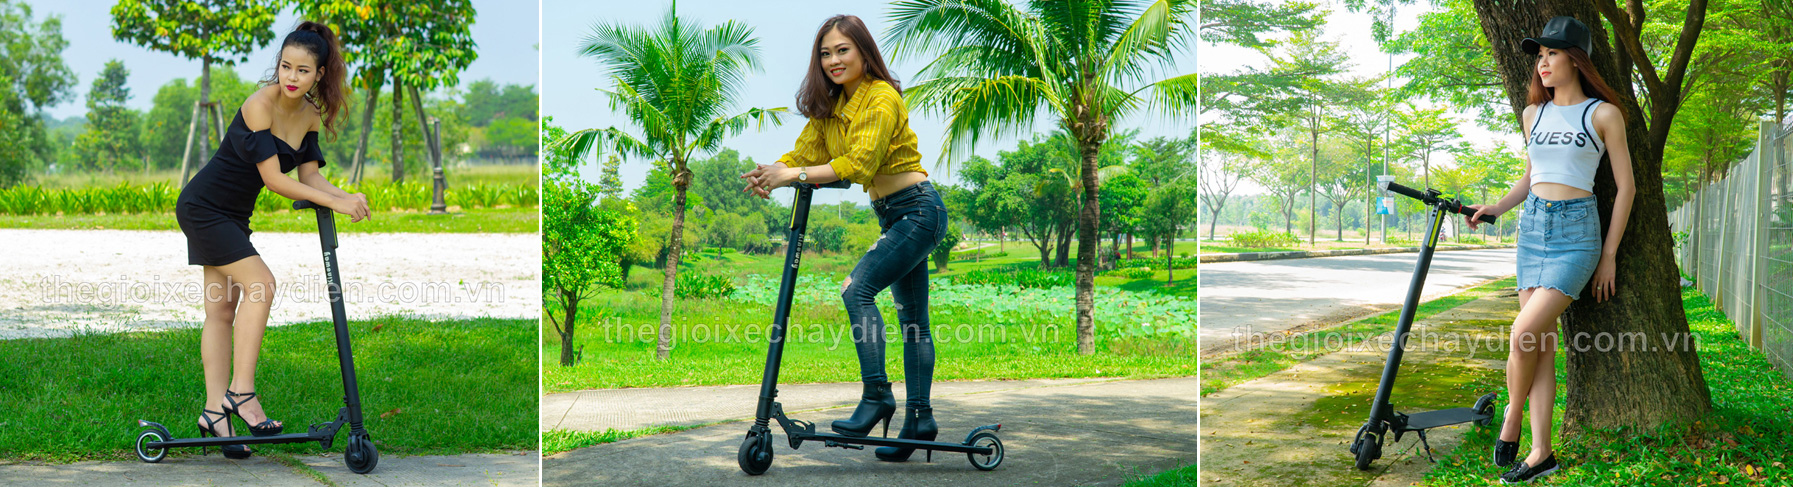 Xe Electric Scooter Kinoway KV980L 5inh